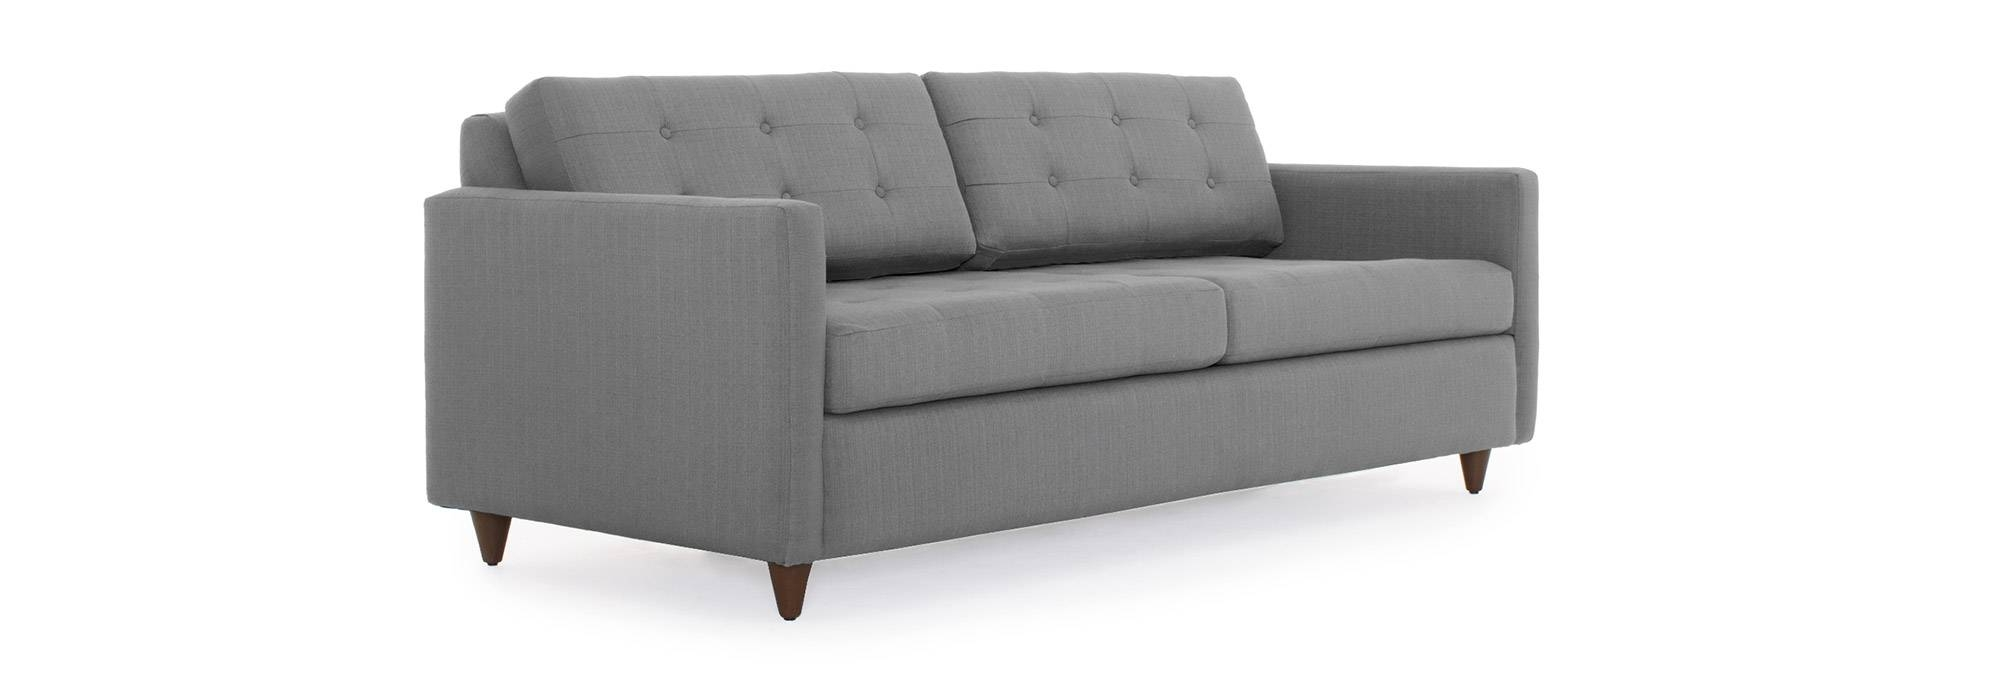 Eliot Sleeper Sofa | Joybird within Elliott Sofa (Image 10 of 30)